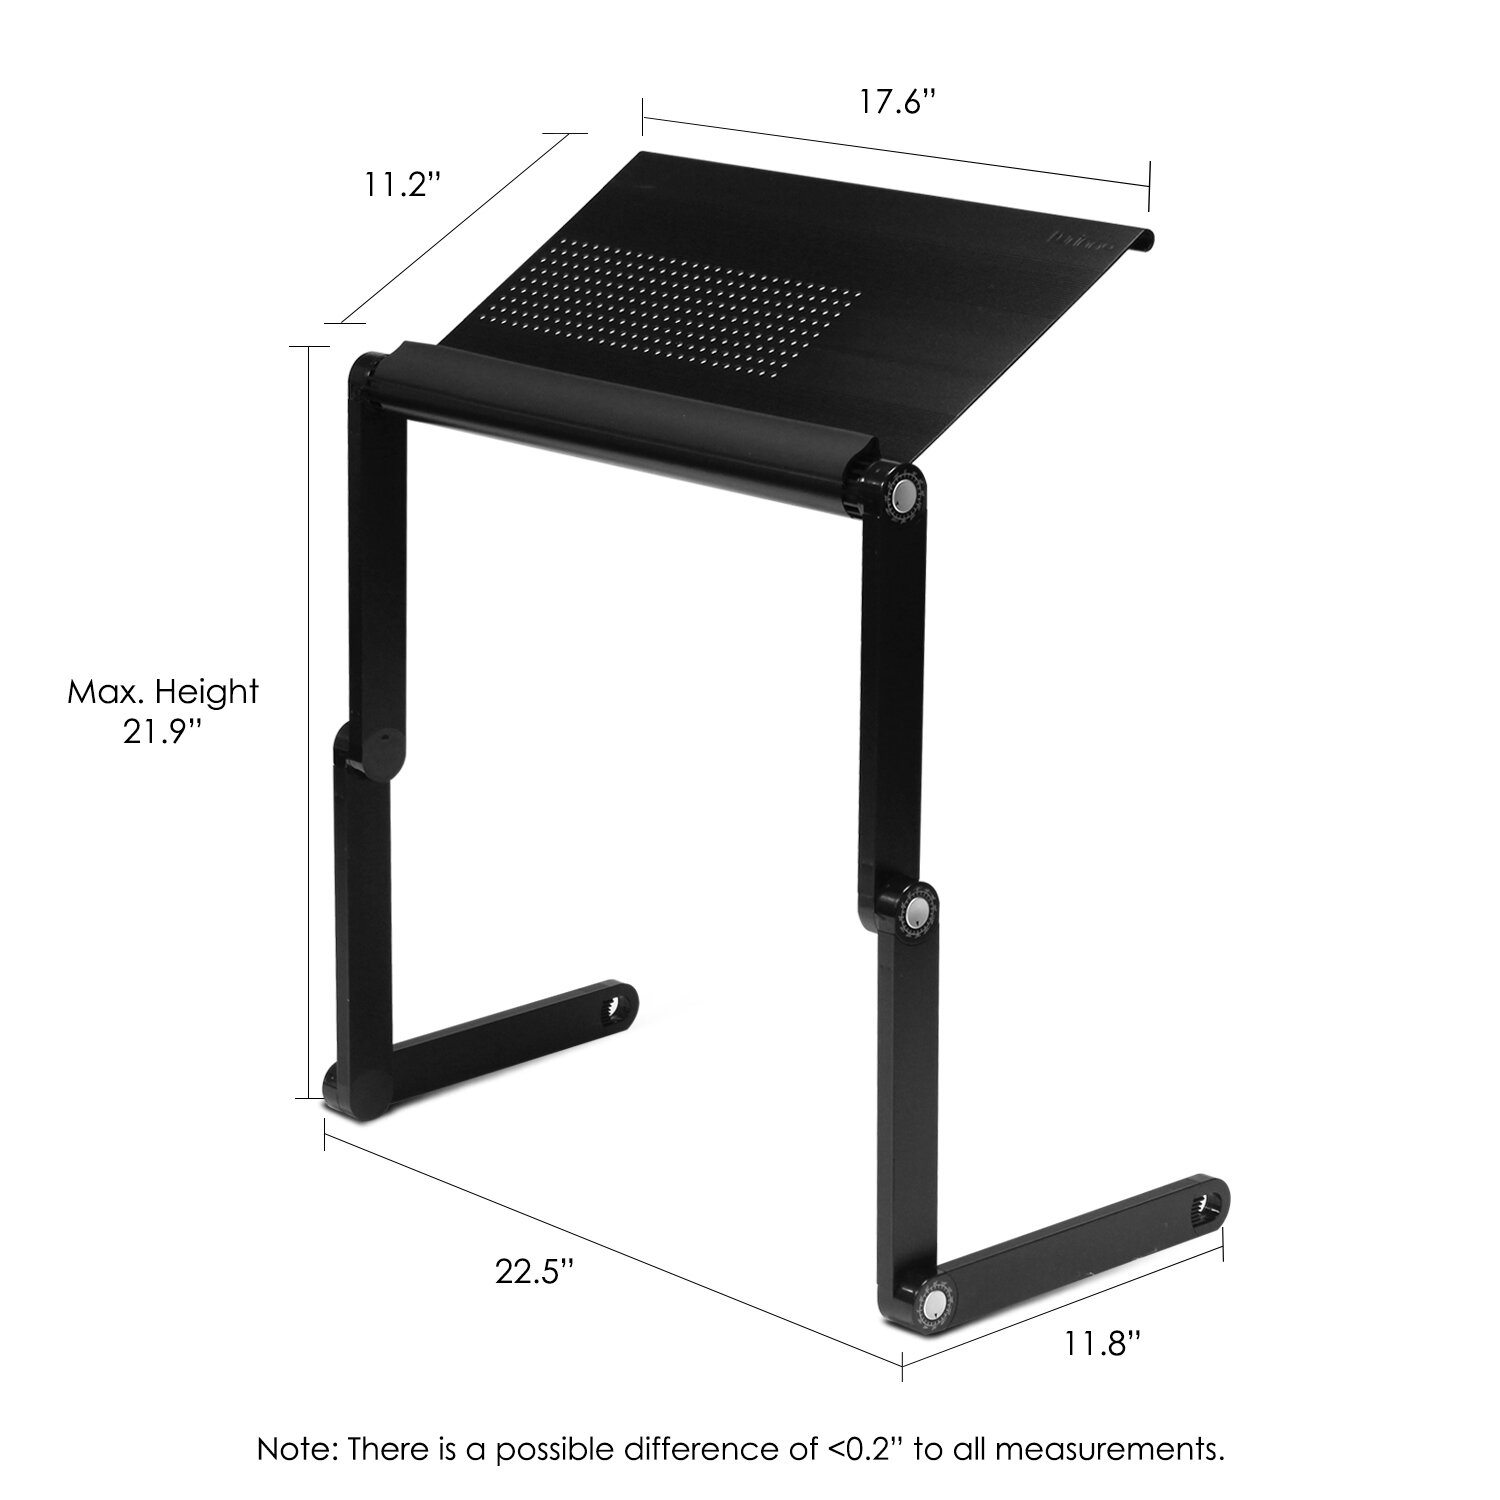 Wildon Home ® Vented Laptop Table / Portable Bed Tray Book Stand U0026 Reviews  | Wayfair